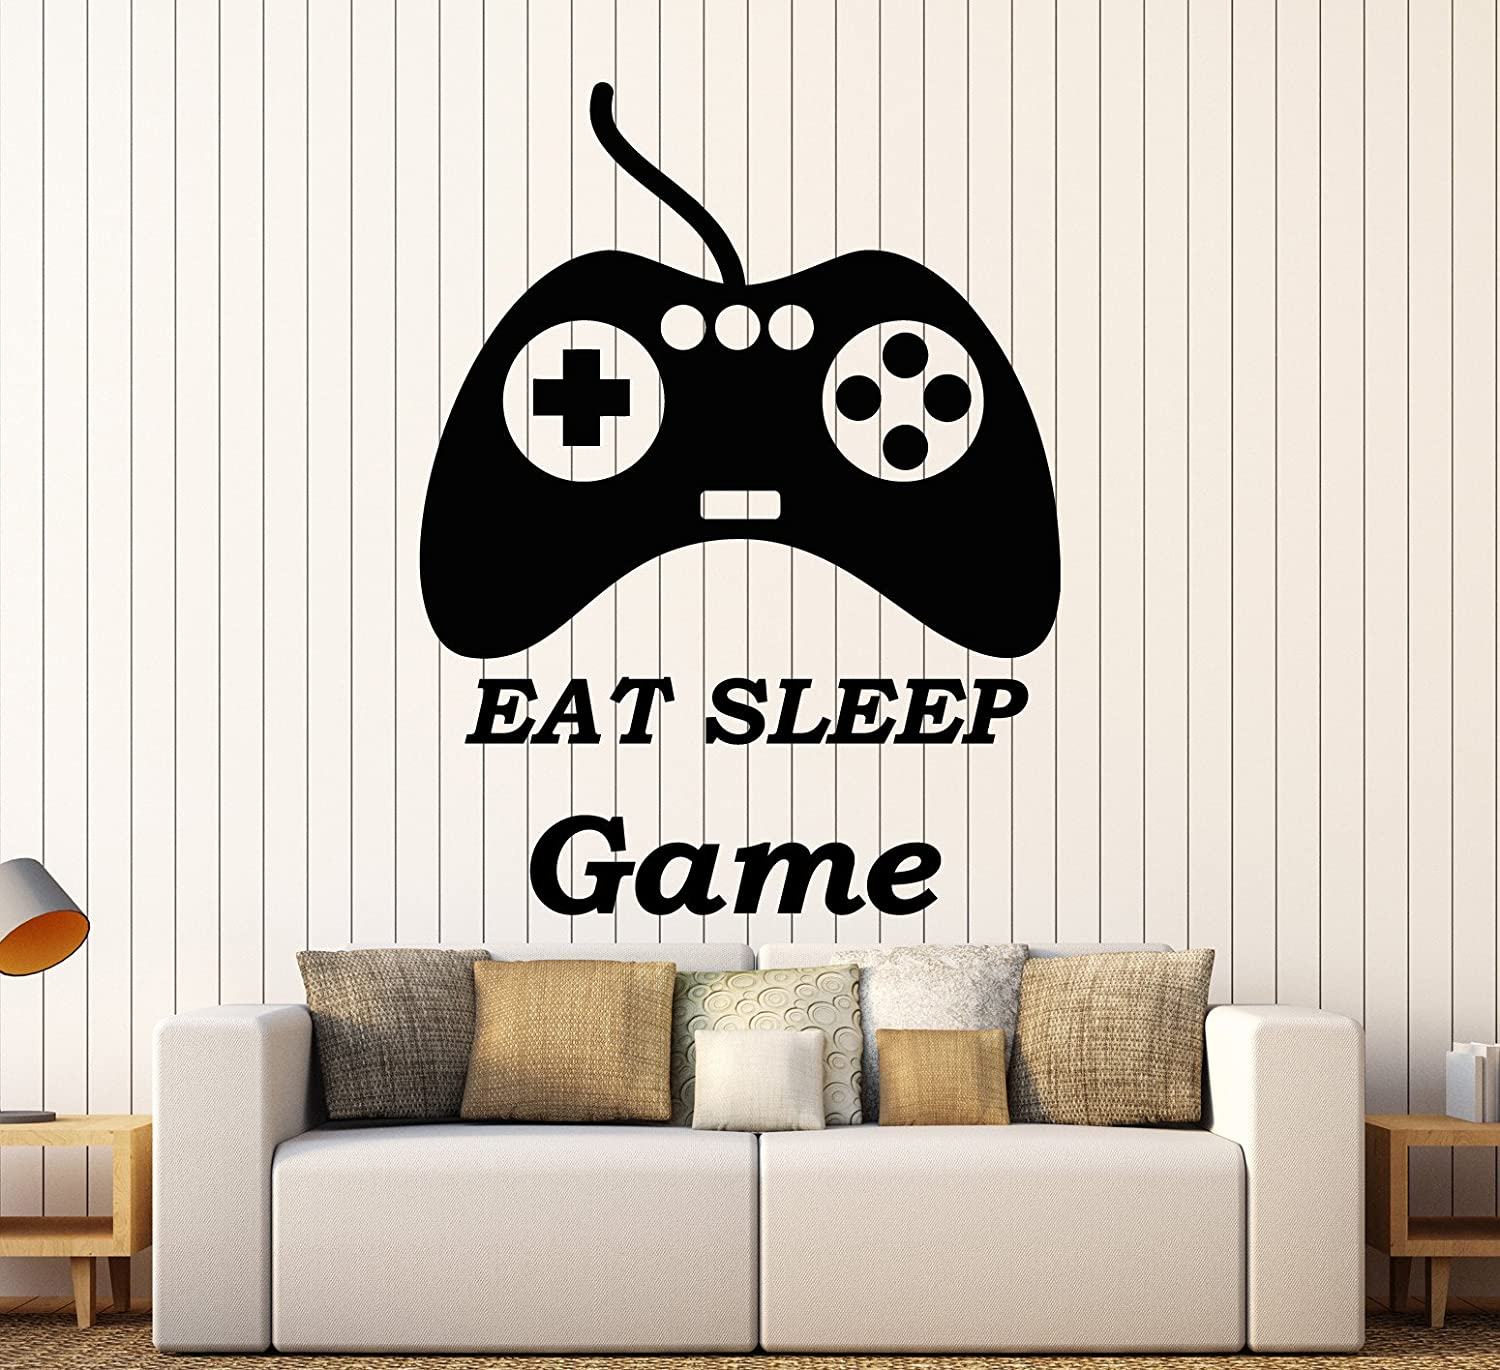 Vinyl Wall Decal Joystick Gaming Quote Video Game Stickers Large Decor (ig4020) Black